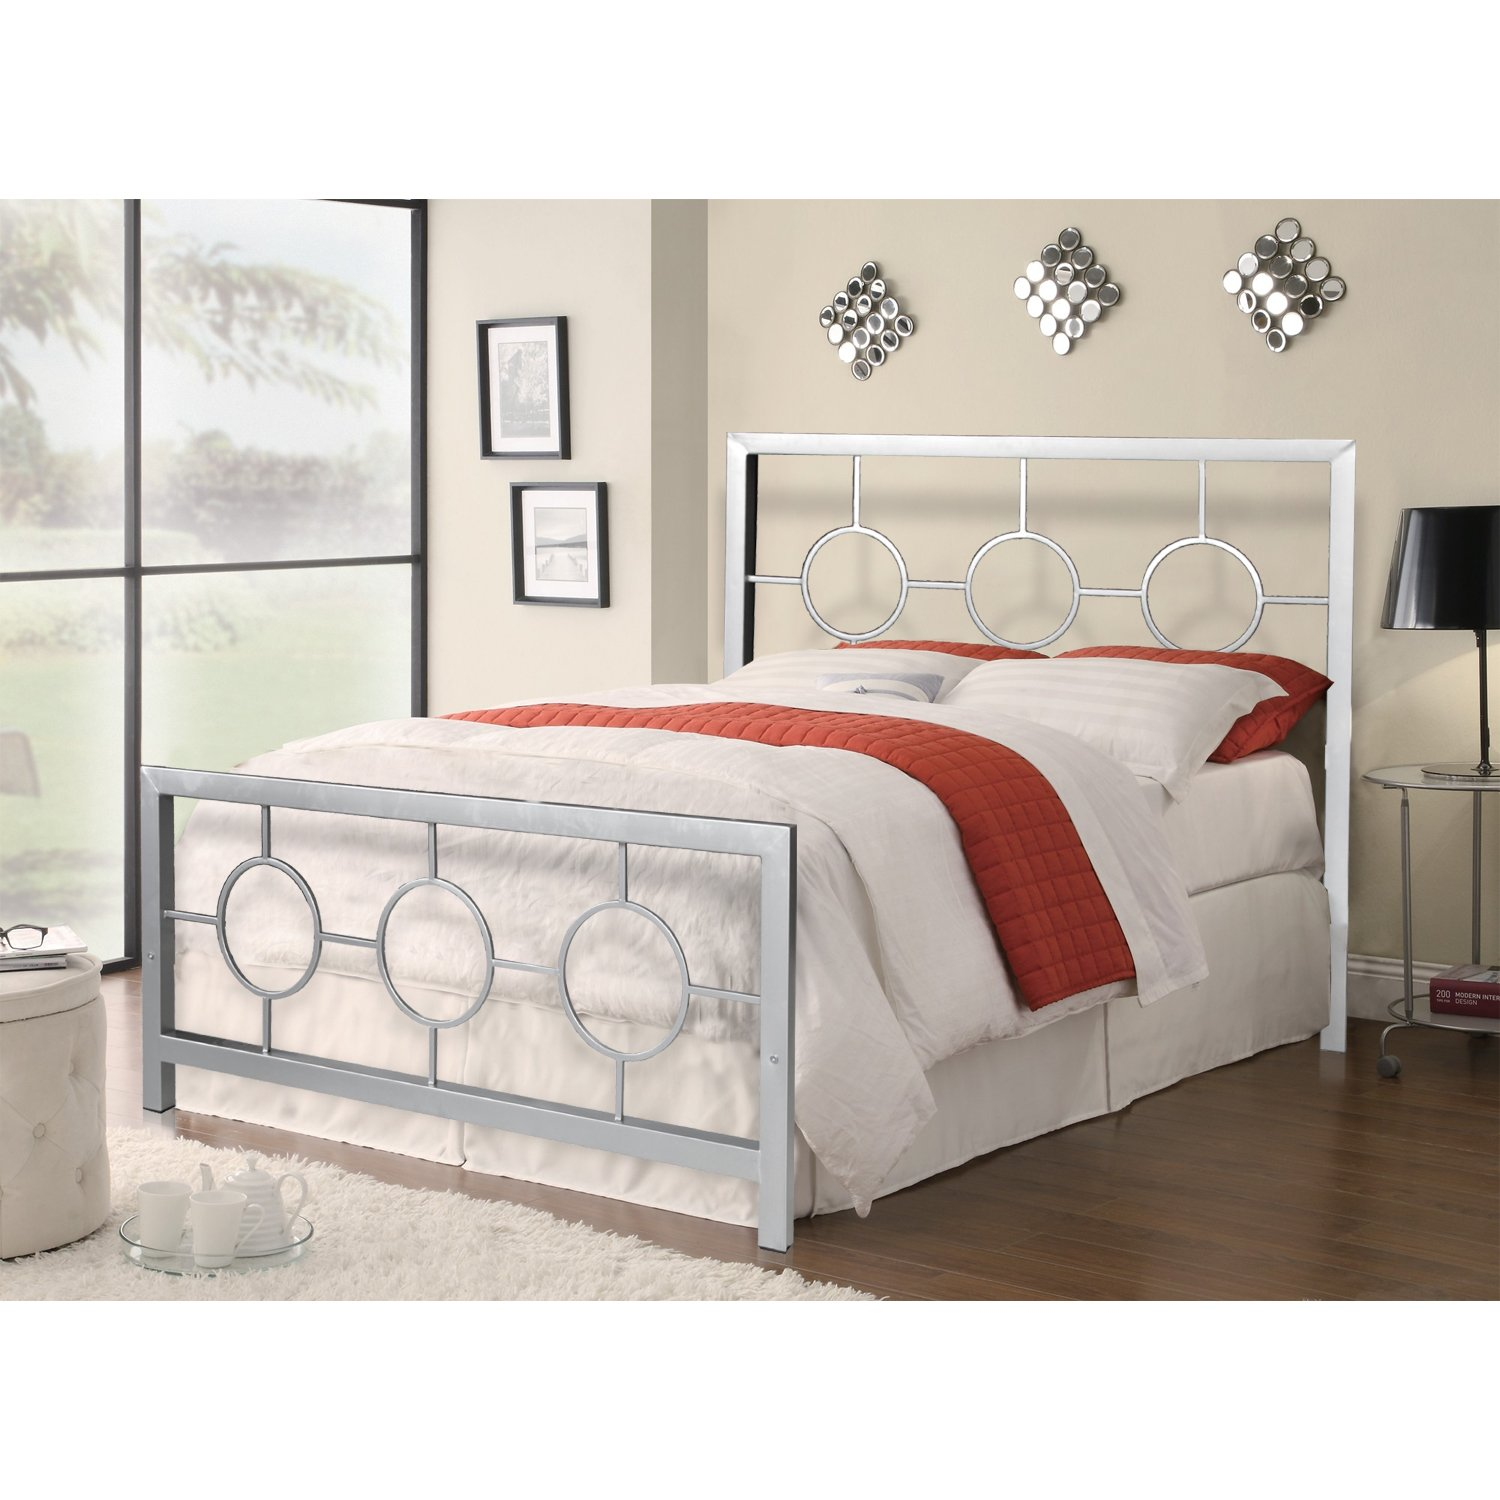 Amazon.com: Home Source Industries 13161 Queen Metal Bed Frame with ...